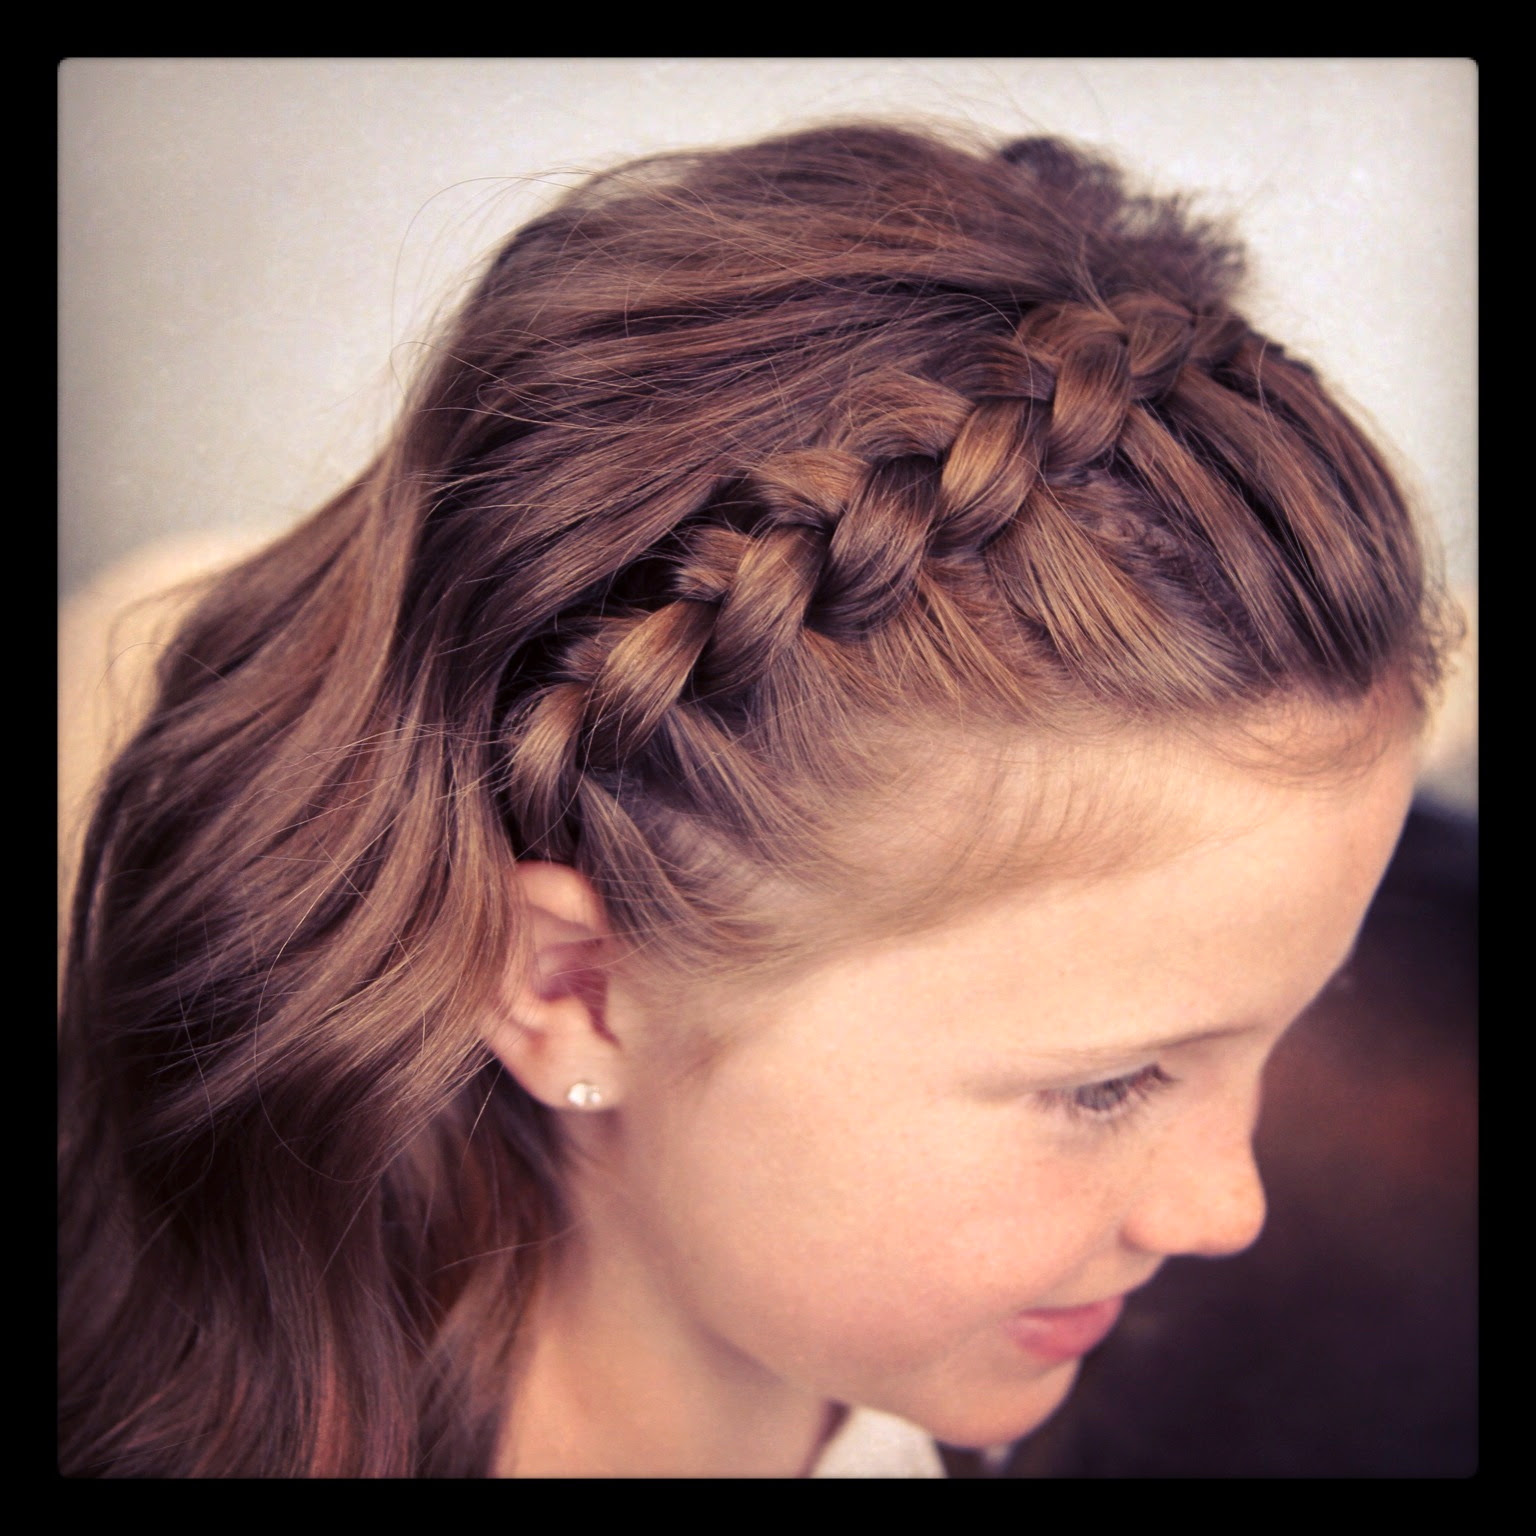 Cute Hairstyles For Short Hair Kids Short Hairstyles For Women